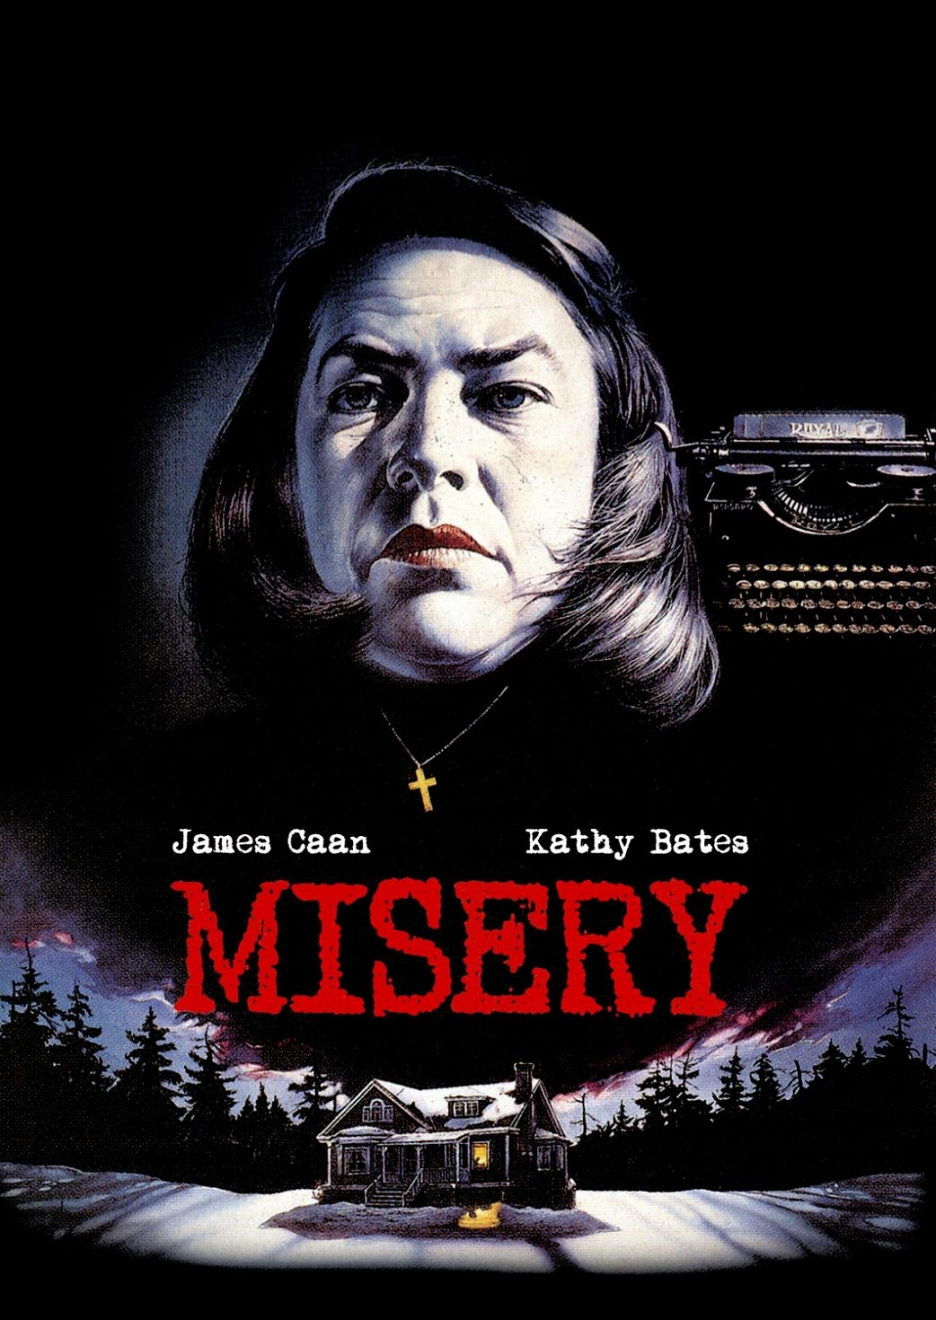 Misery - Rob Reiner